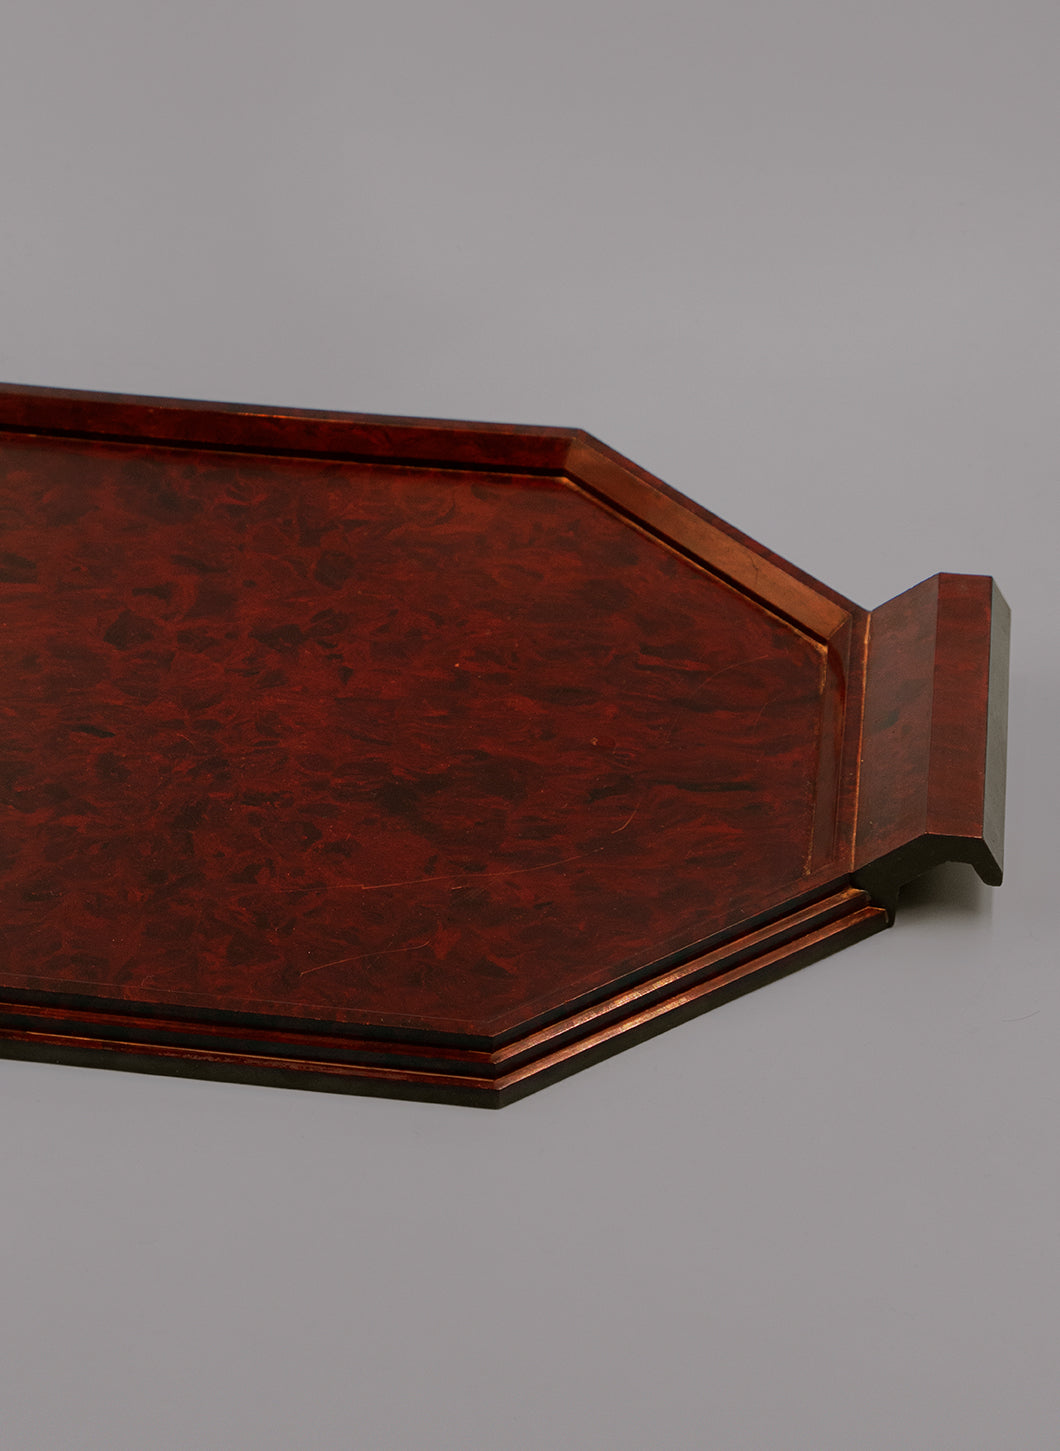 Hexagonal Bakelite Tray